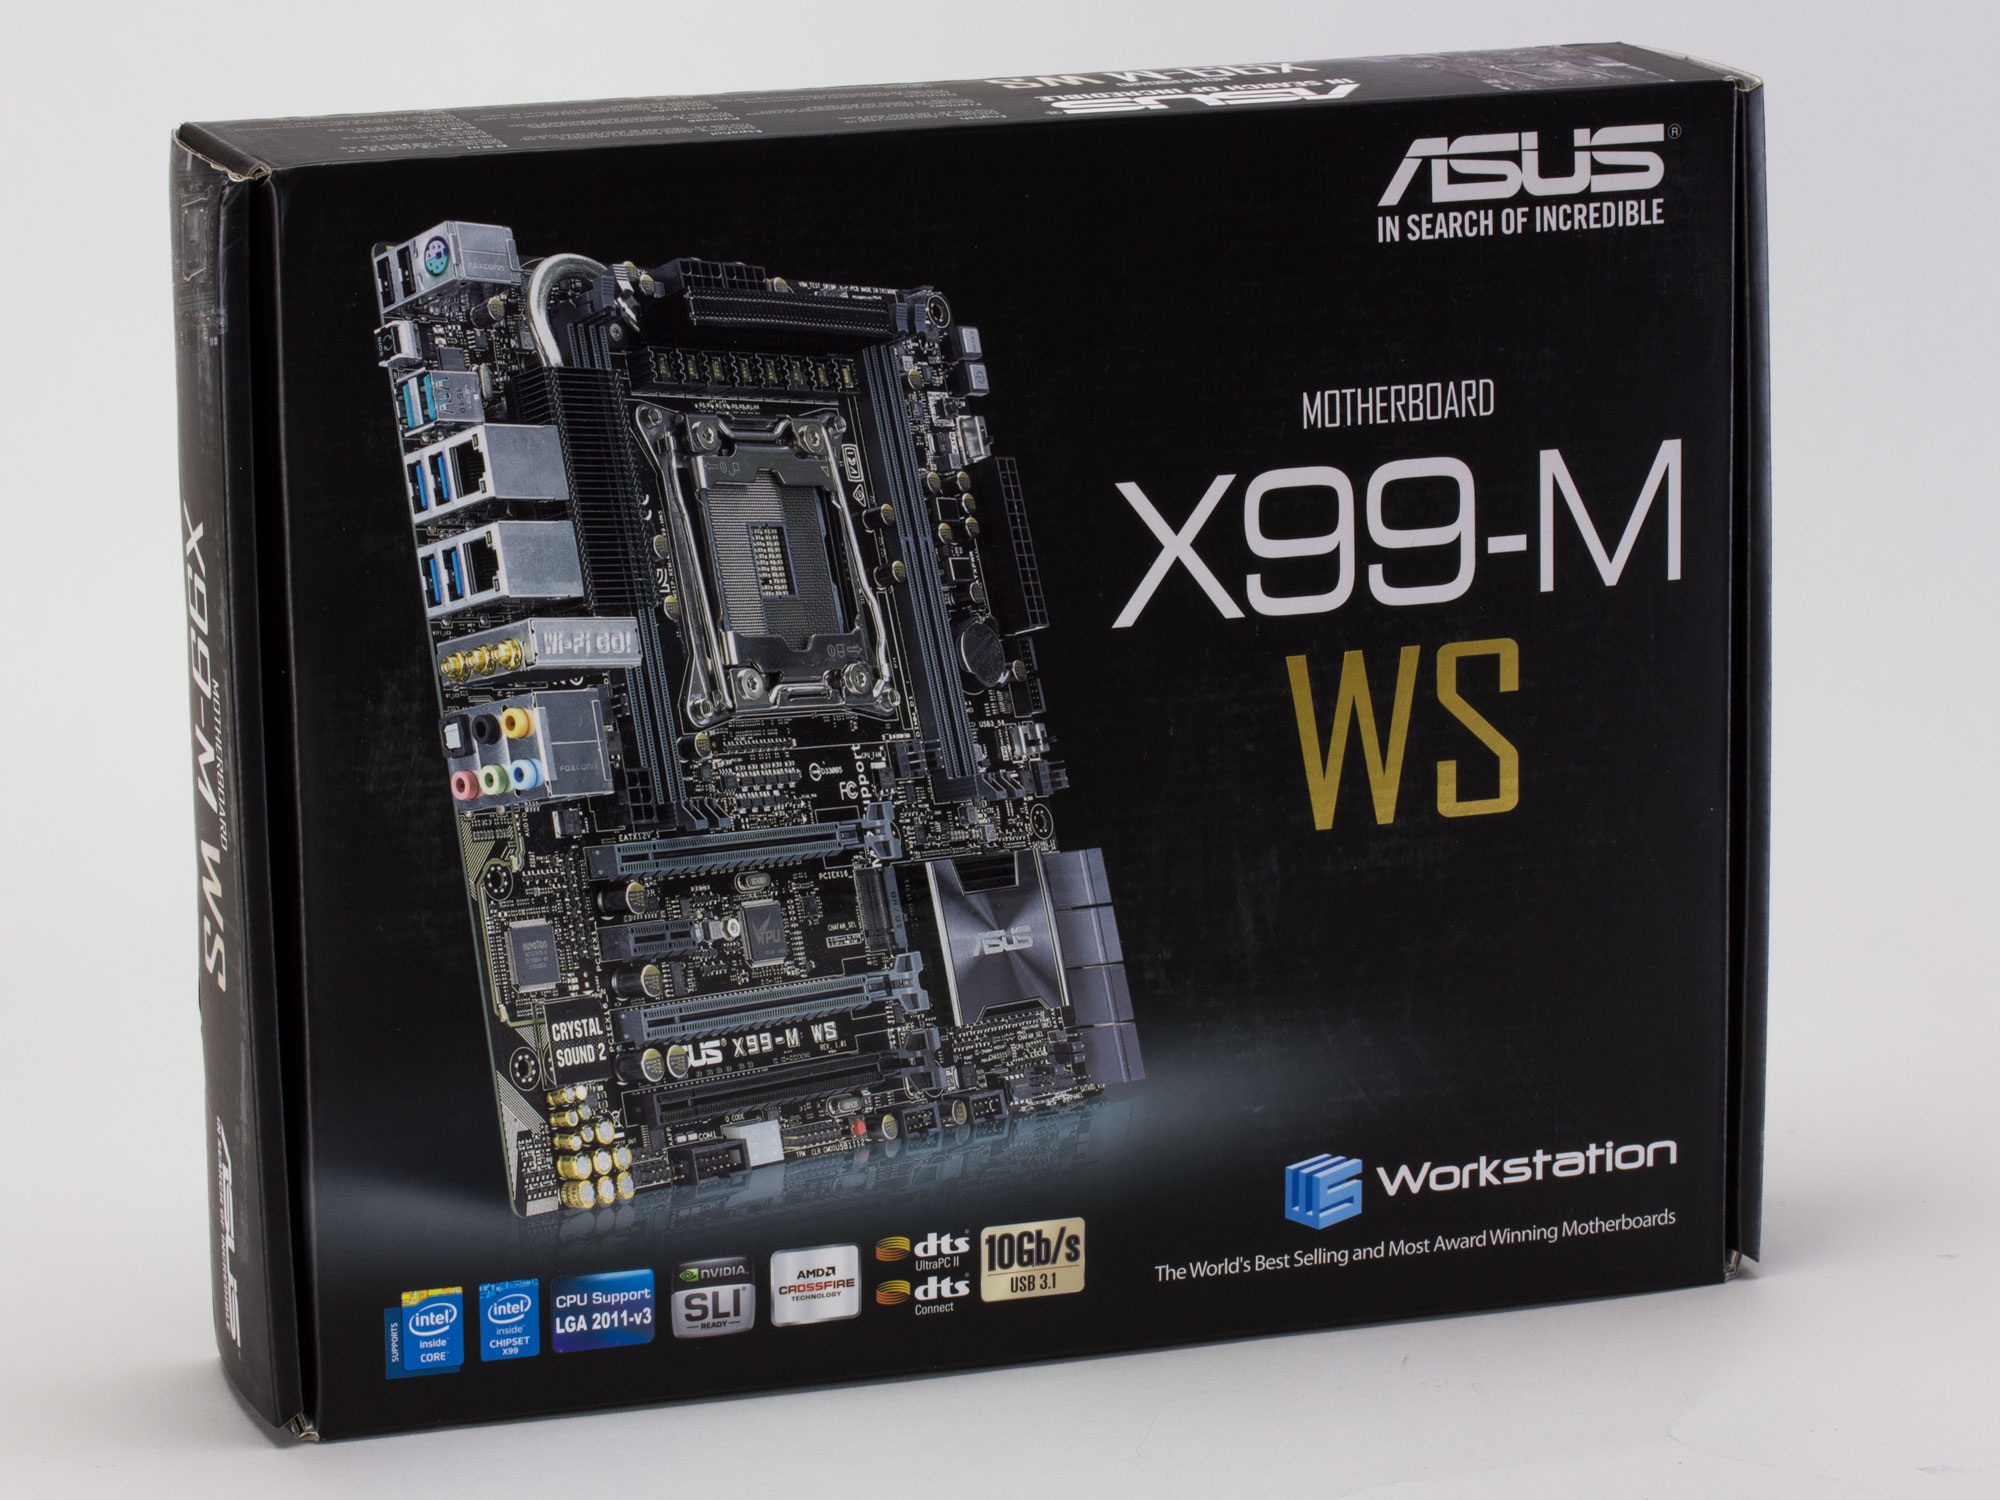 ASUS X99-M WS Broadcom Bluetooth Windows 8 X64